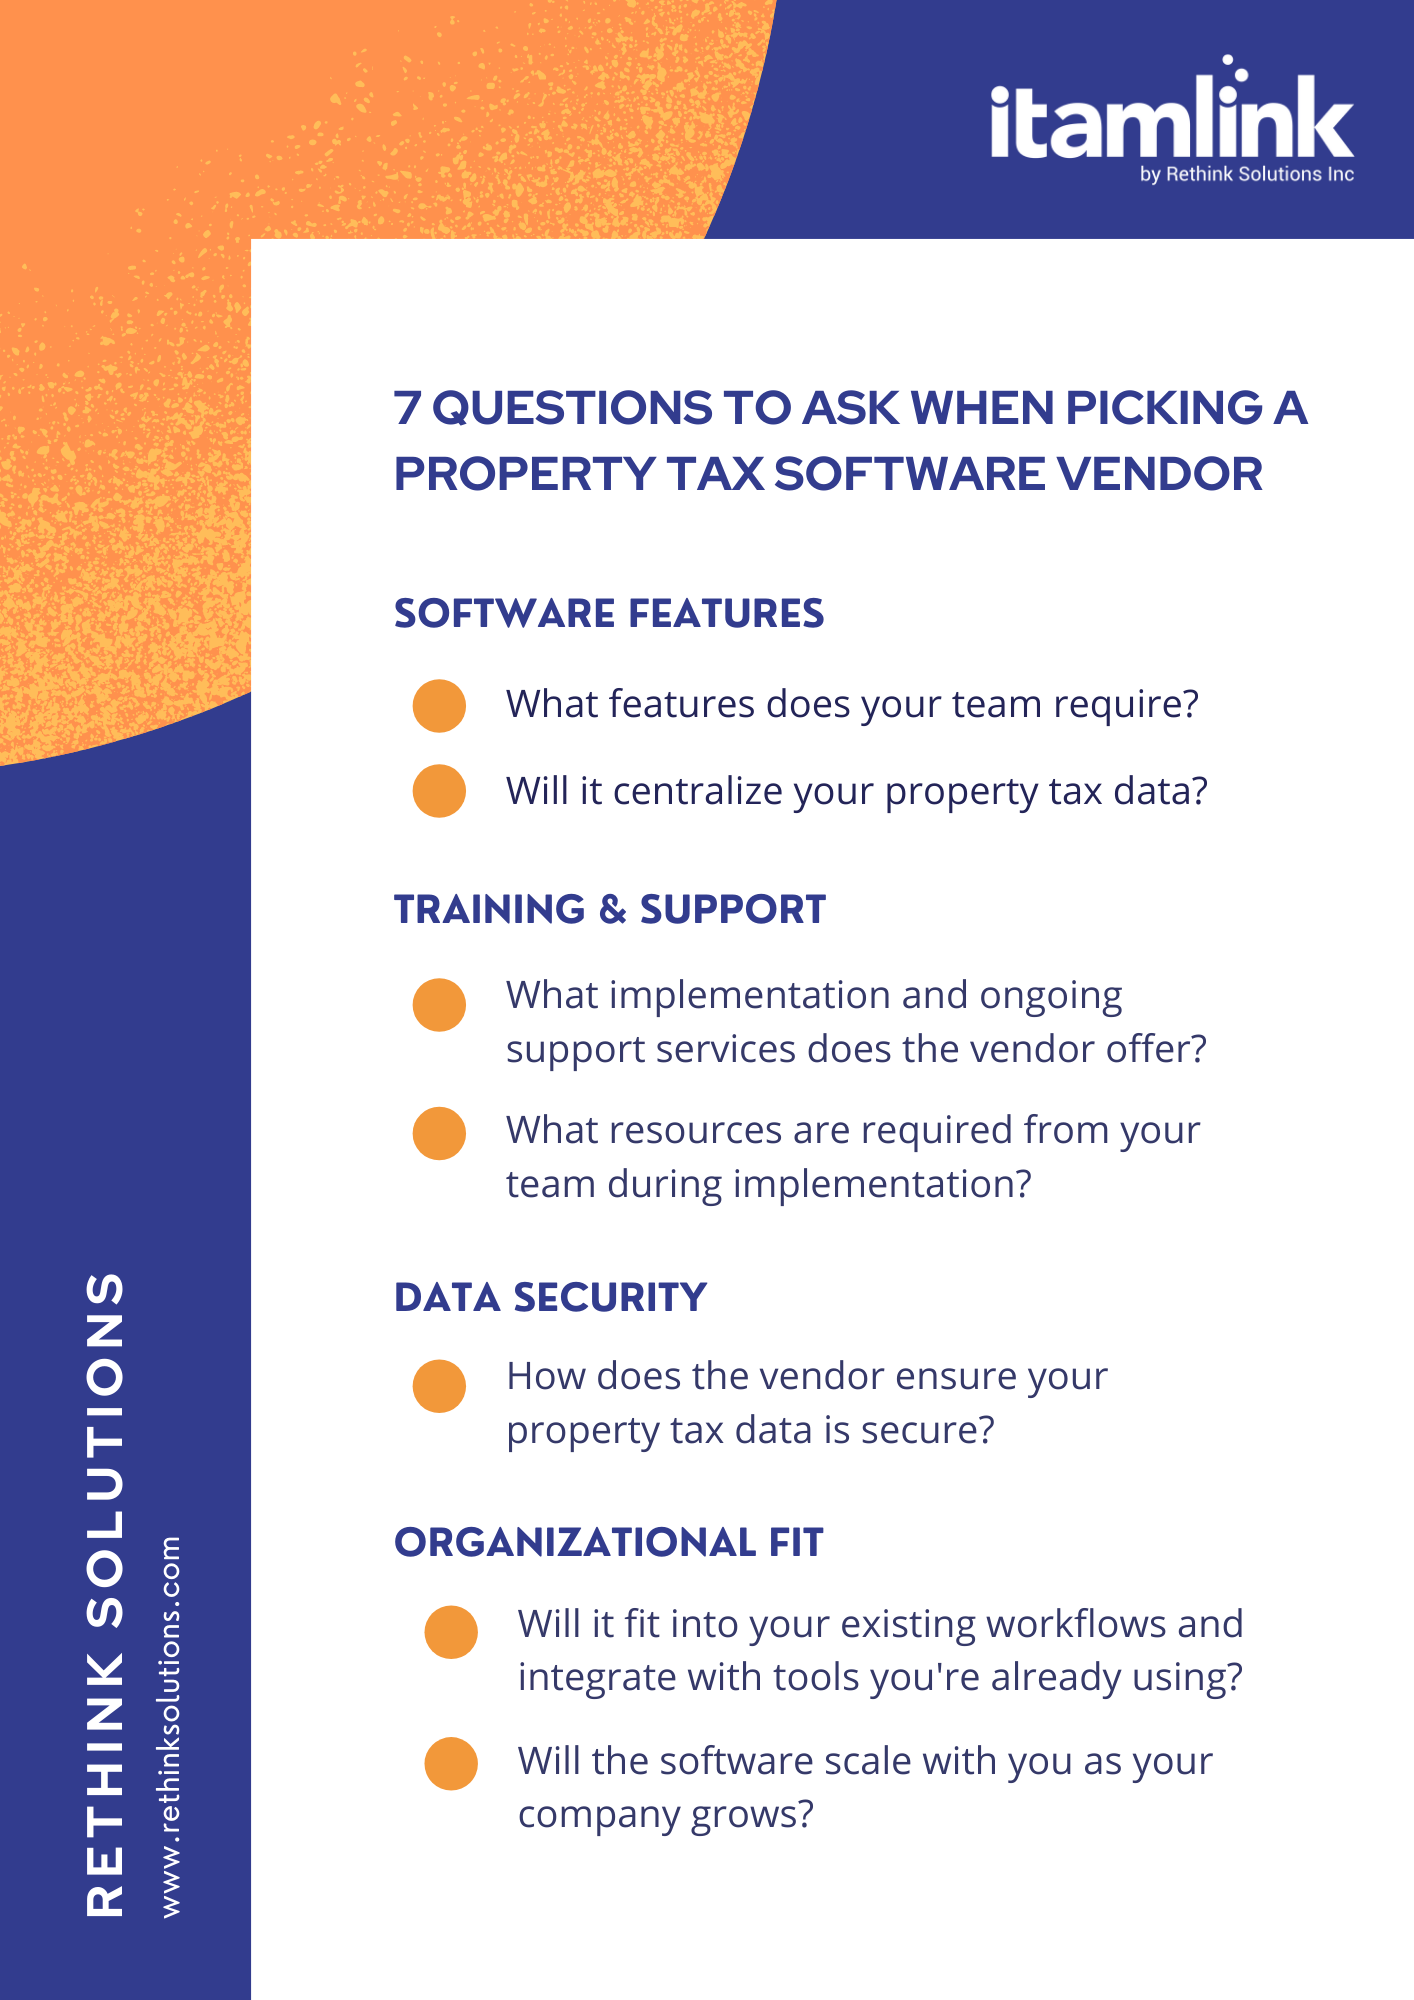 7-question checklist for selecting a software vendor, including features, training, security, and organizational fit